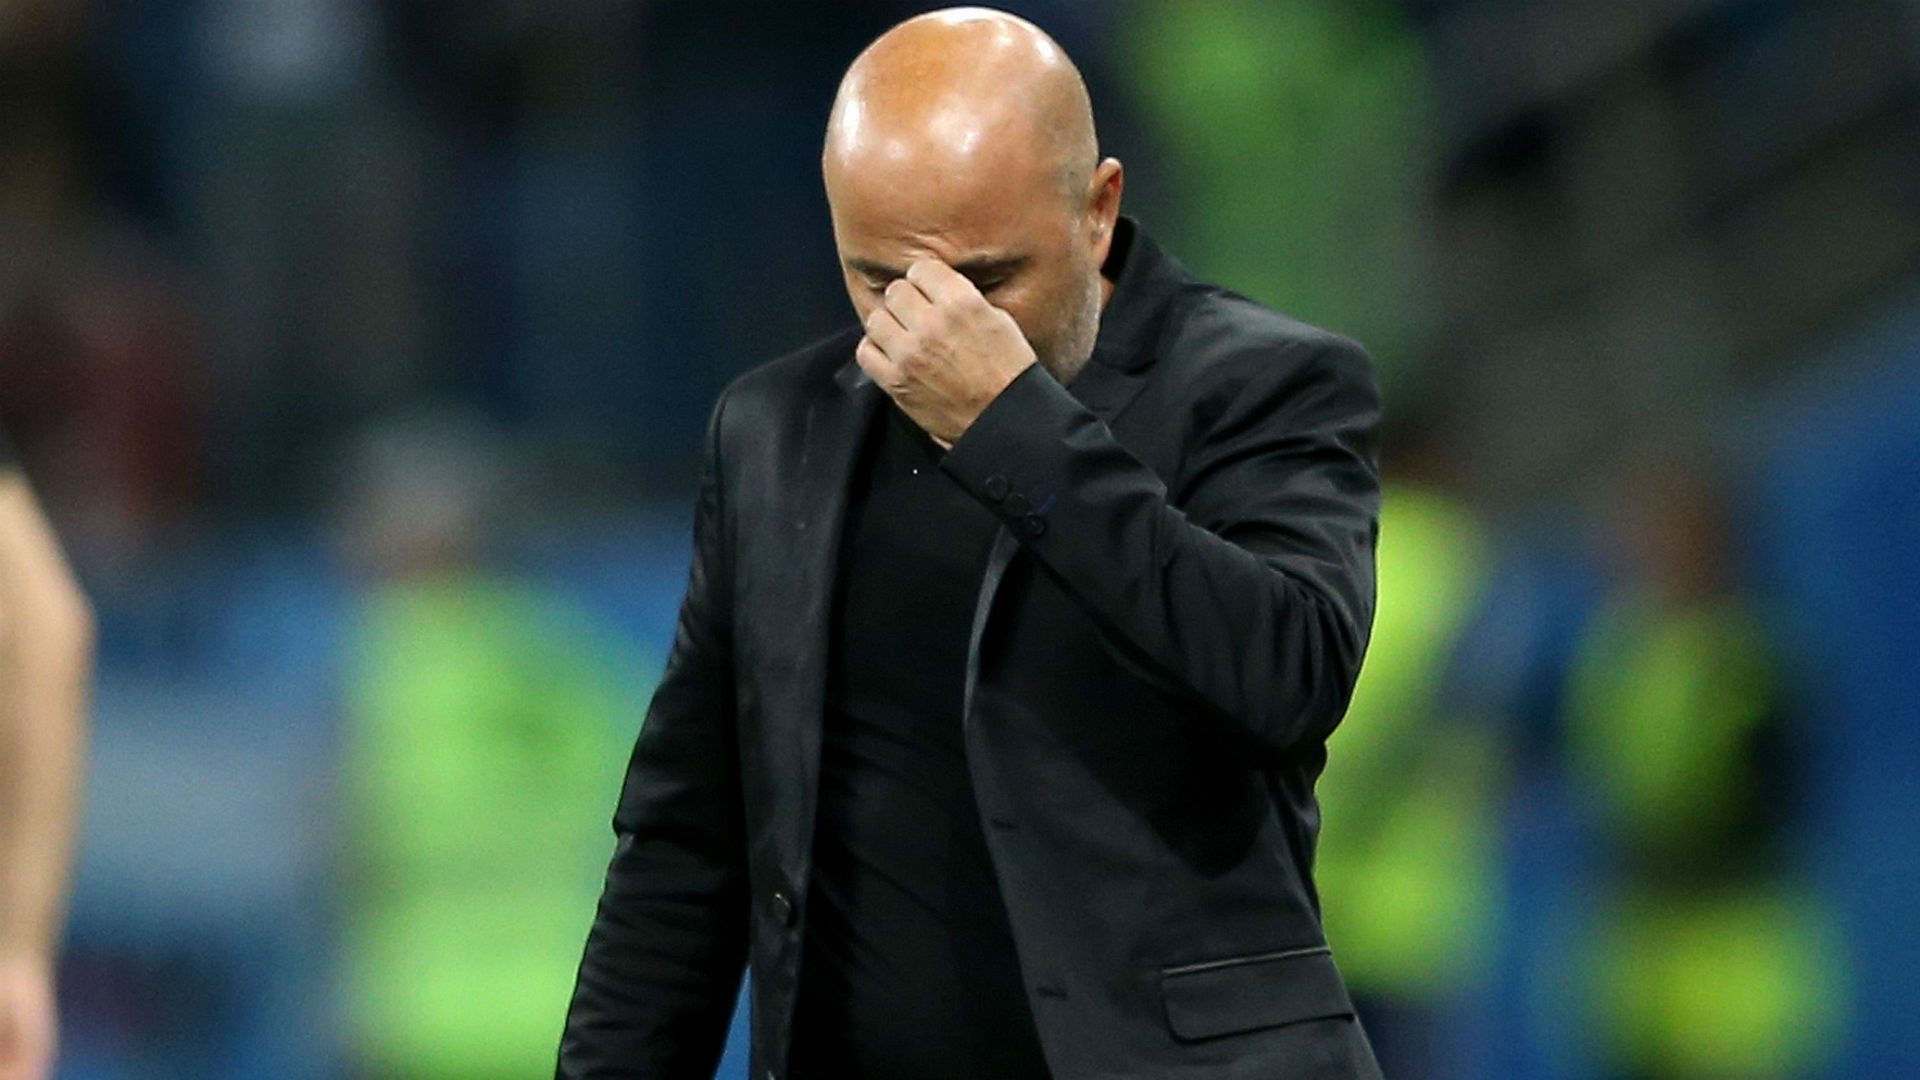 Sampaoli convinced Argentina's World Cup will restart against Nigeria